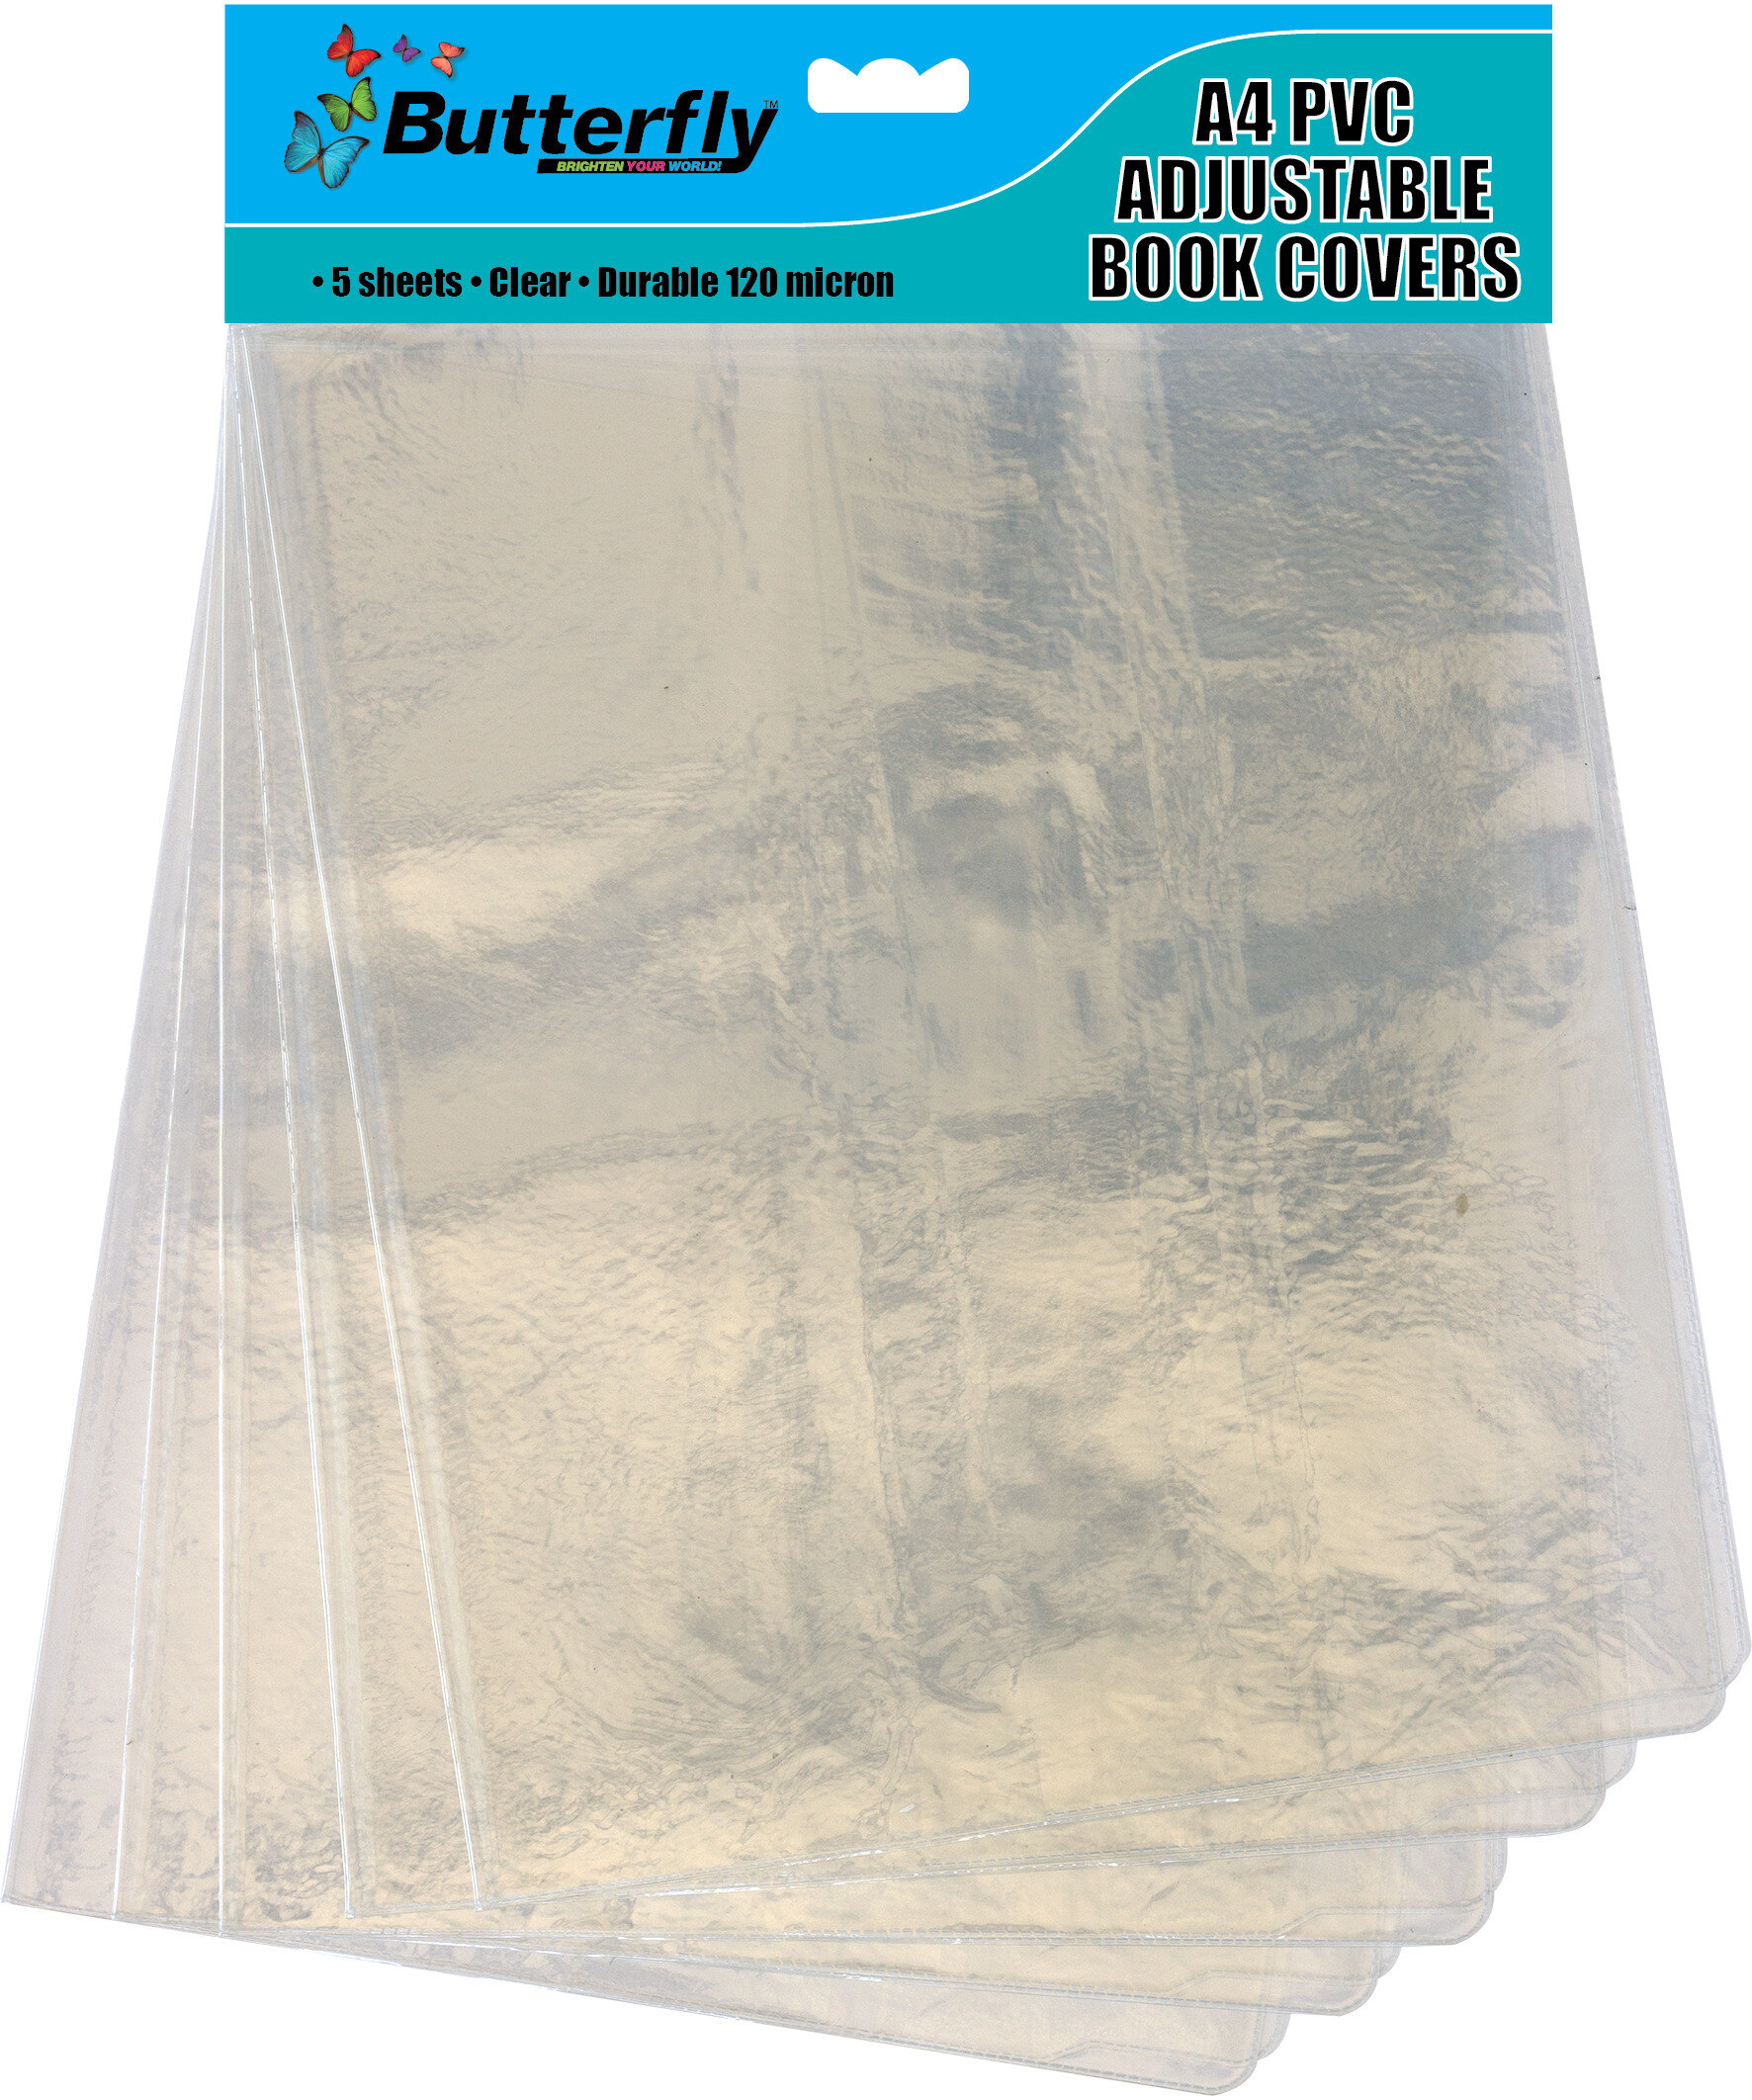 A4 PVC Adjustable Book Covers - Clear 5 Pack 120 Micron